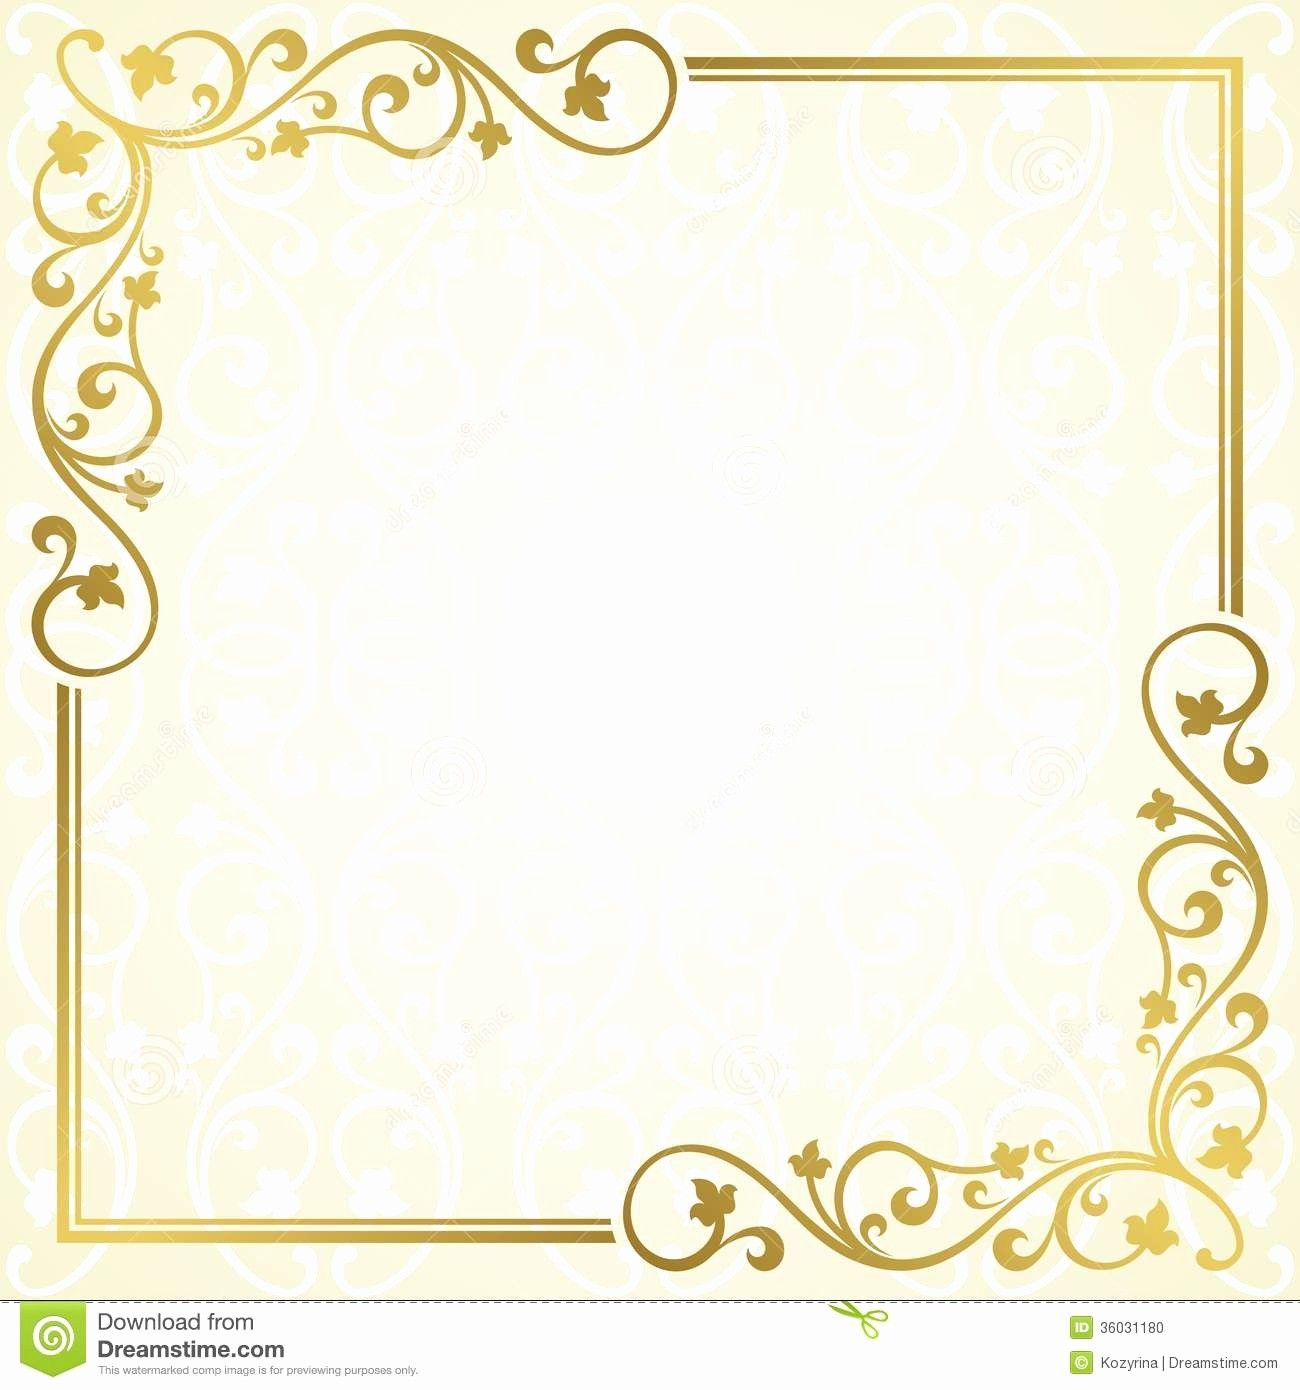 Invitation Cards Template Free Download Fresh 8 Best Of Wedding Invitation Ca Free Wedding Invitation Templates Free Wedding Invitations Wedding Card Templates